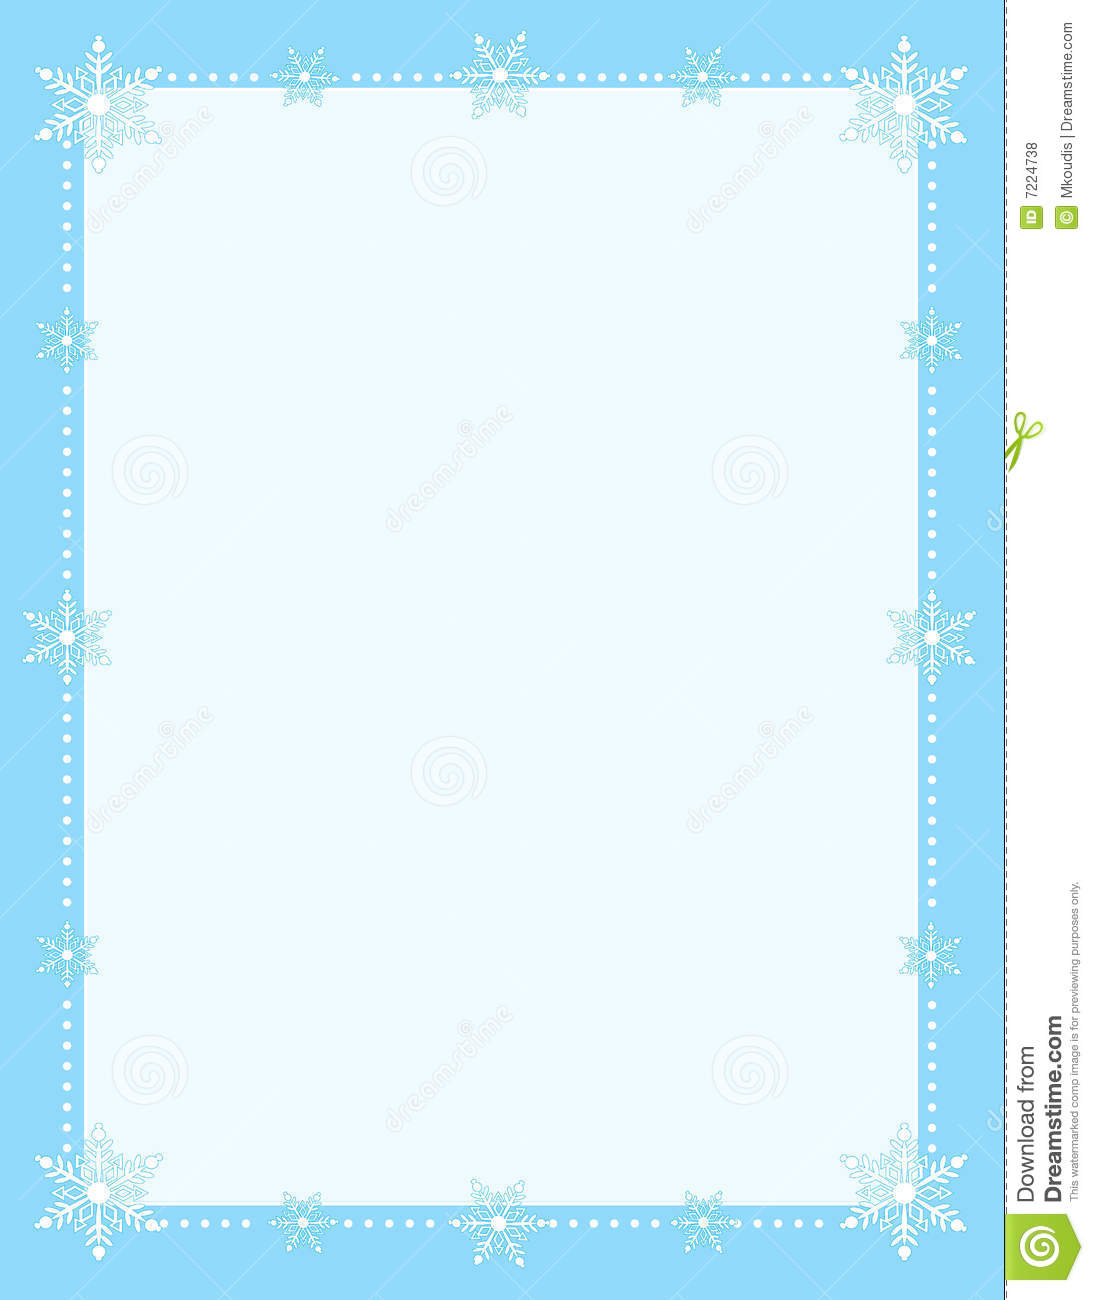 ... snowflake border pale blue center and framed with white snowflakes